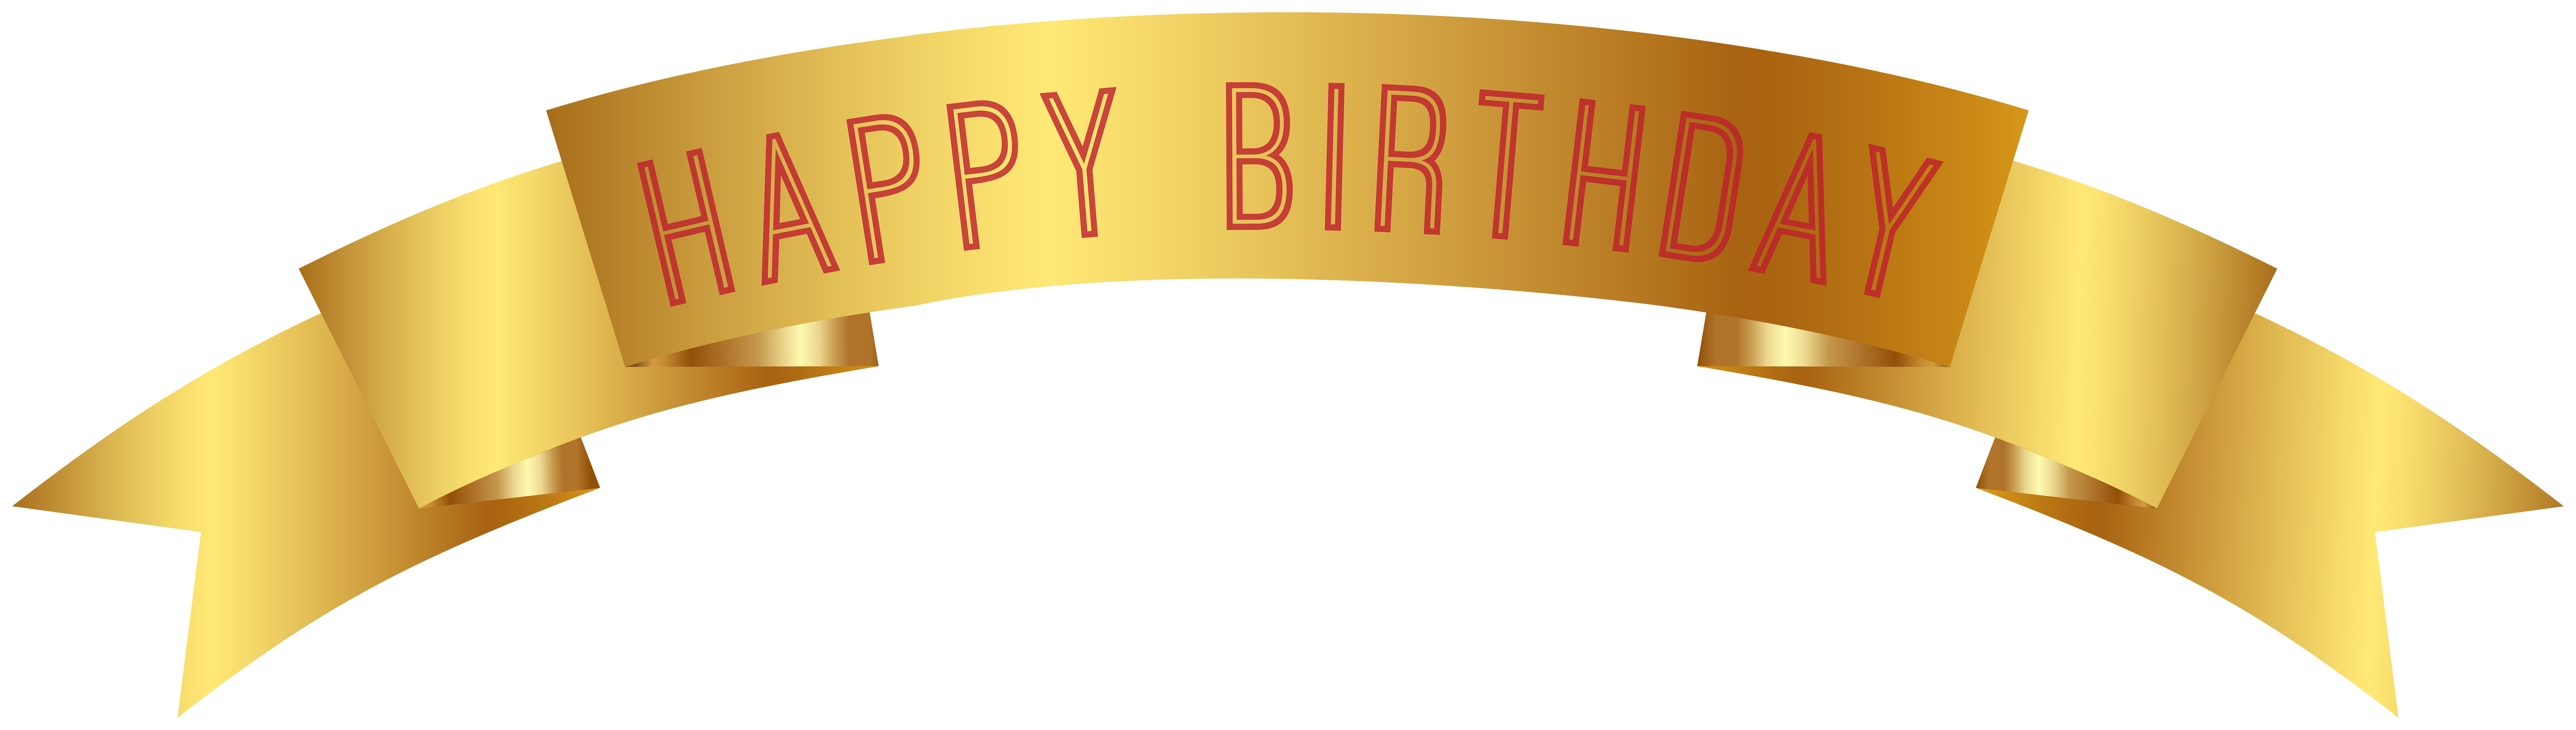 Png happy birthday. Gold banner clip art